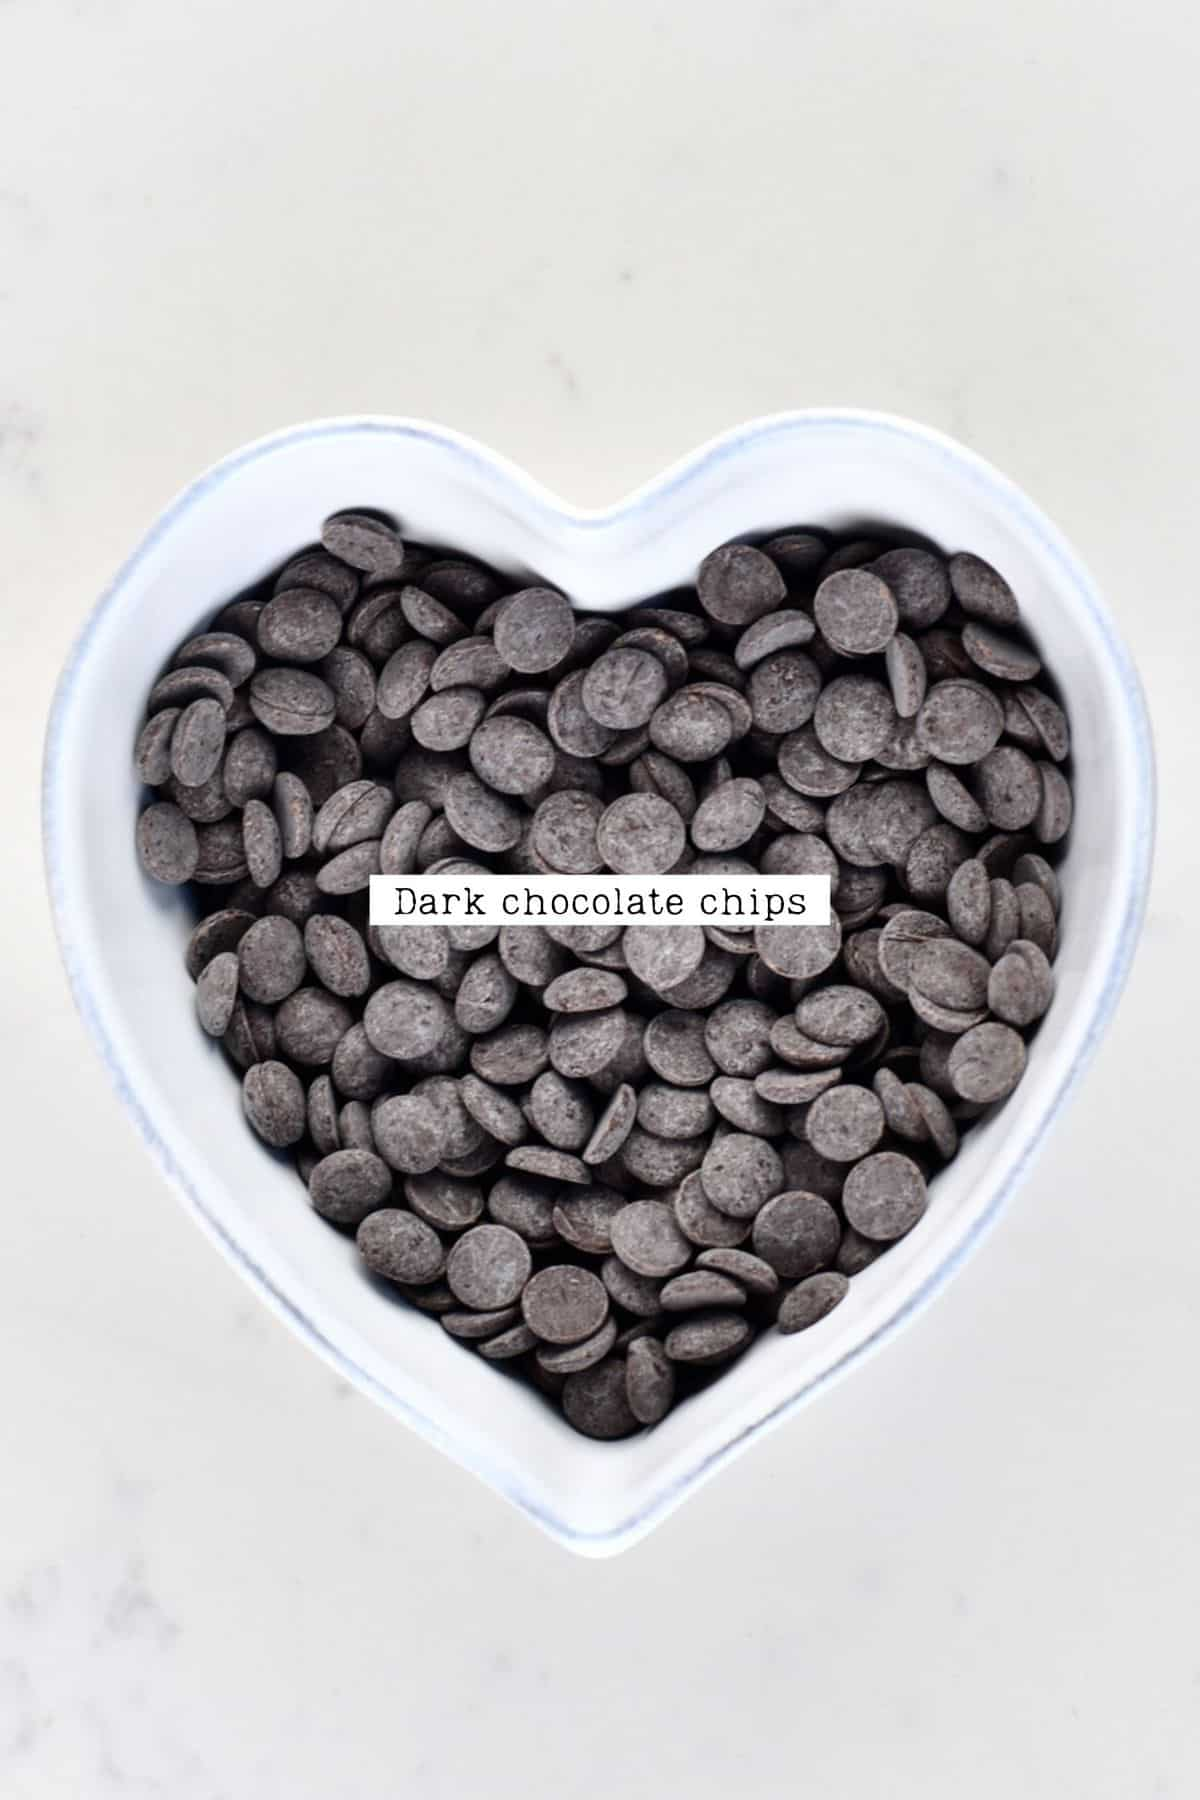 Dark chocolate chips in a heart shaped bowl